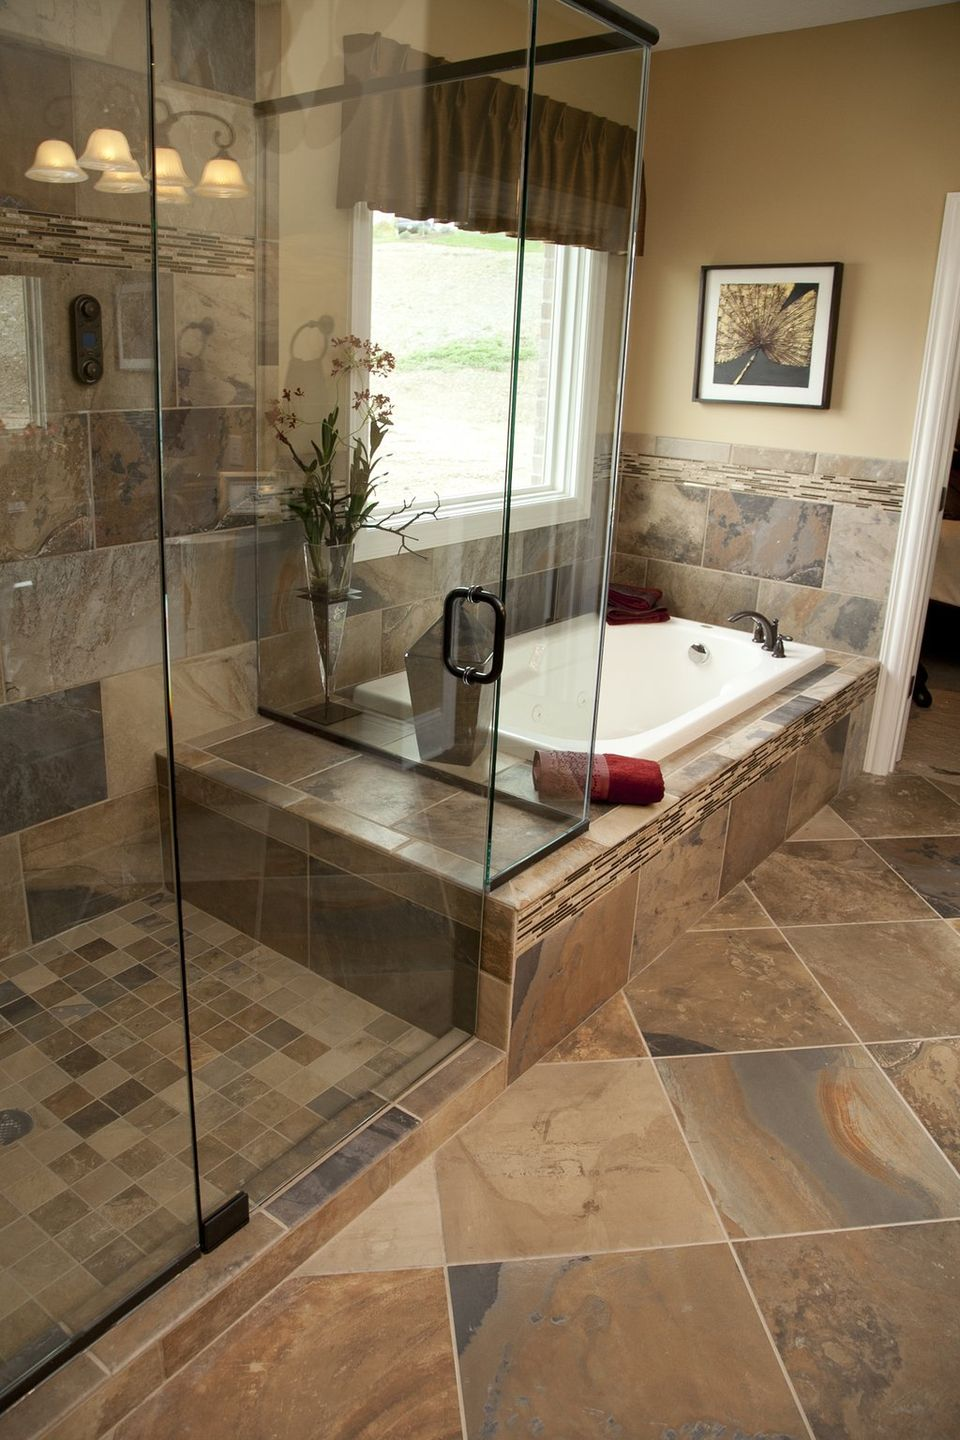 33 stunning pictures and ideas of natural stone bathroom Classic bathroom tile ideas